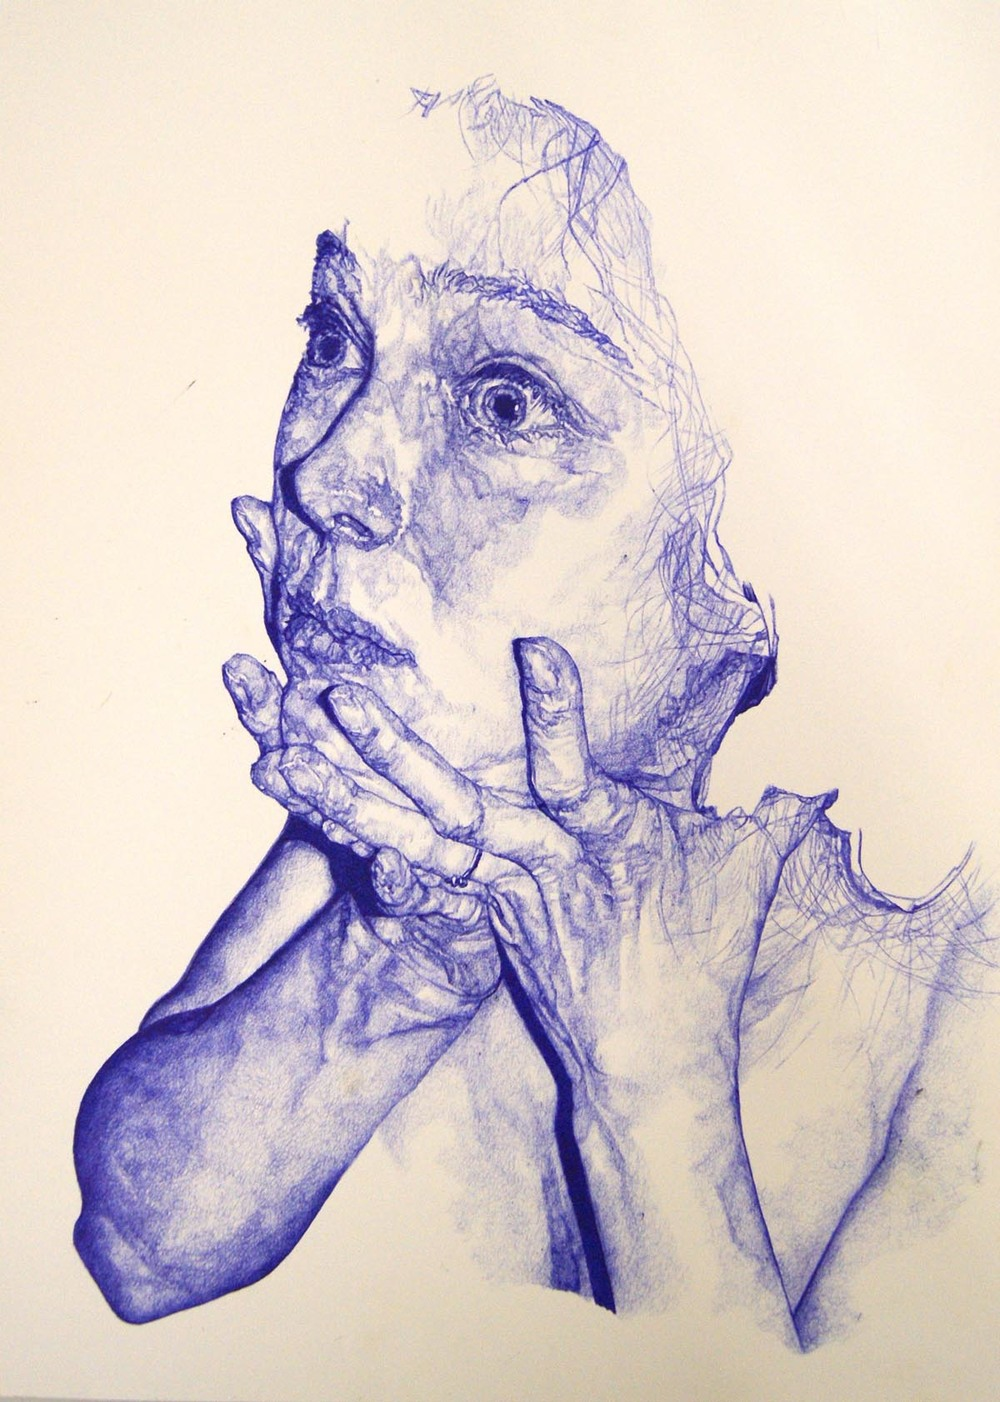 Sara Muirhead-untitled_ballpoint pen on paper_17x20.75 copy.JPG